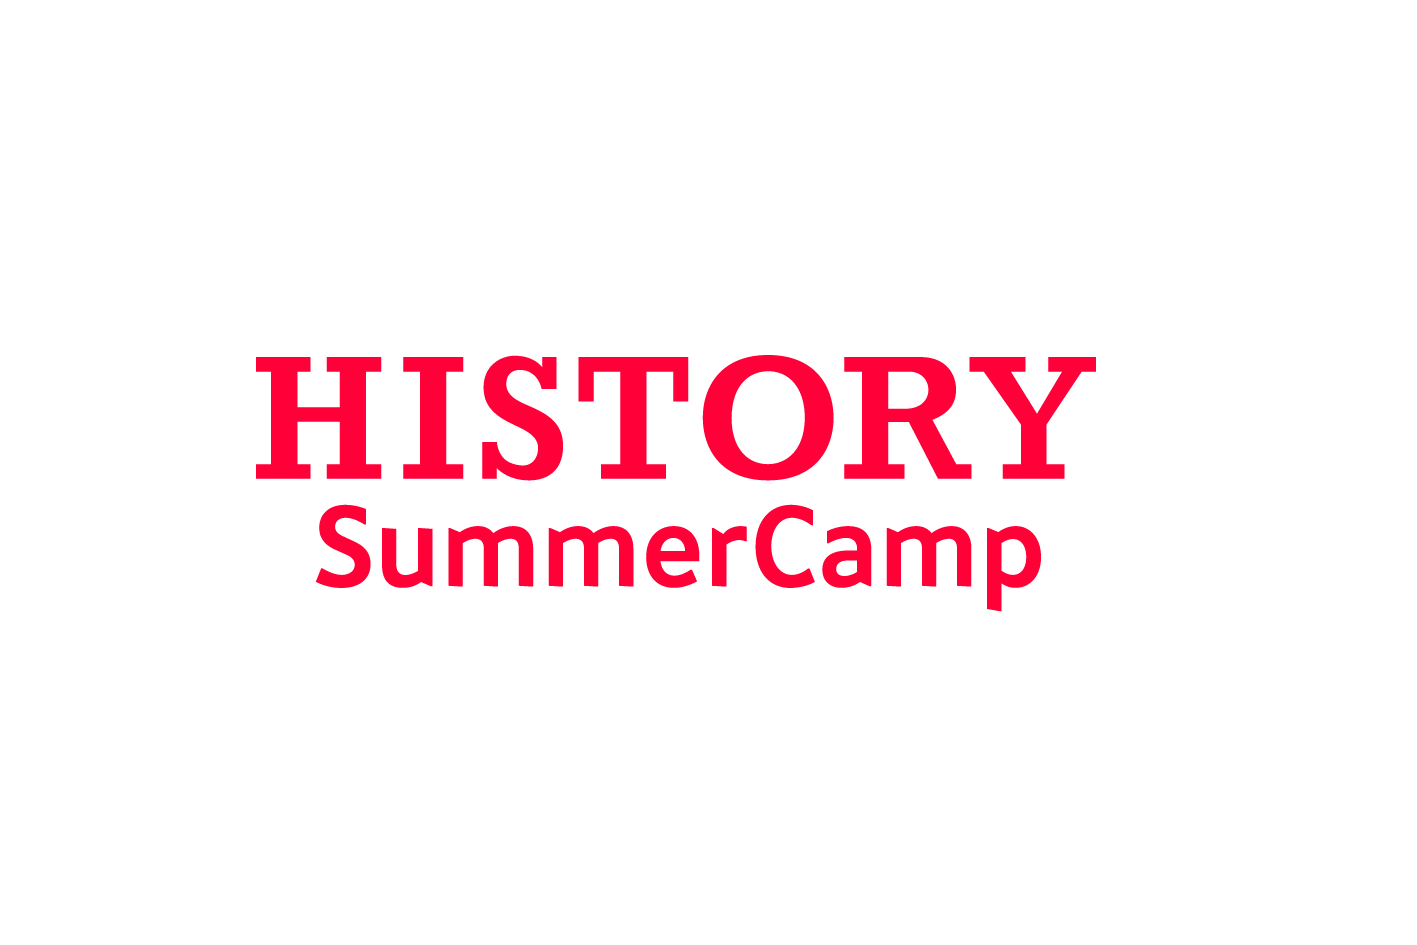 History SummerCamp 2017